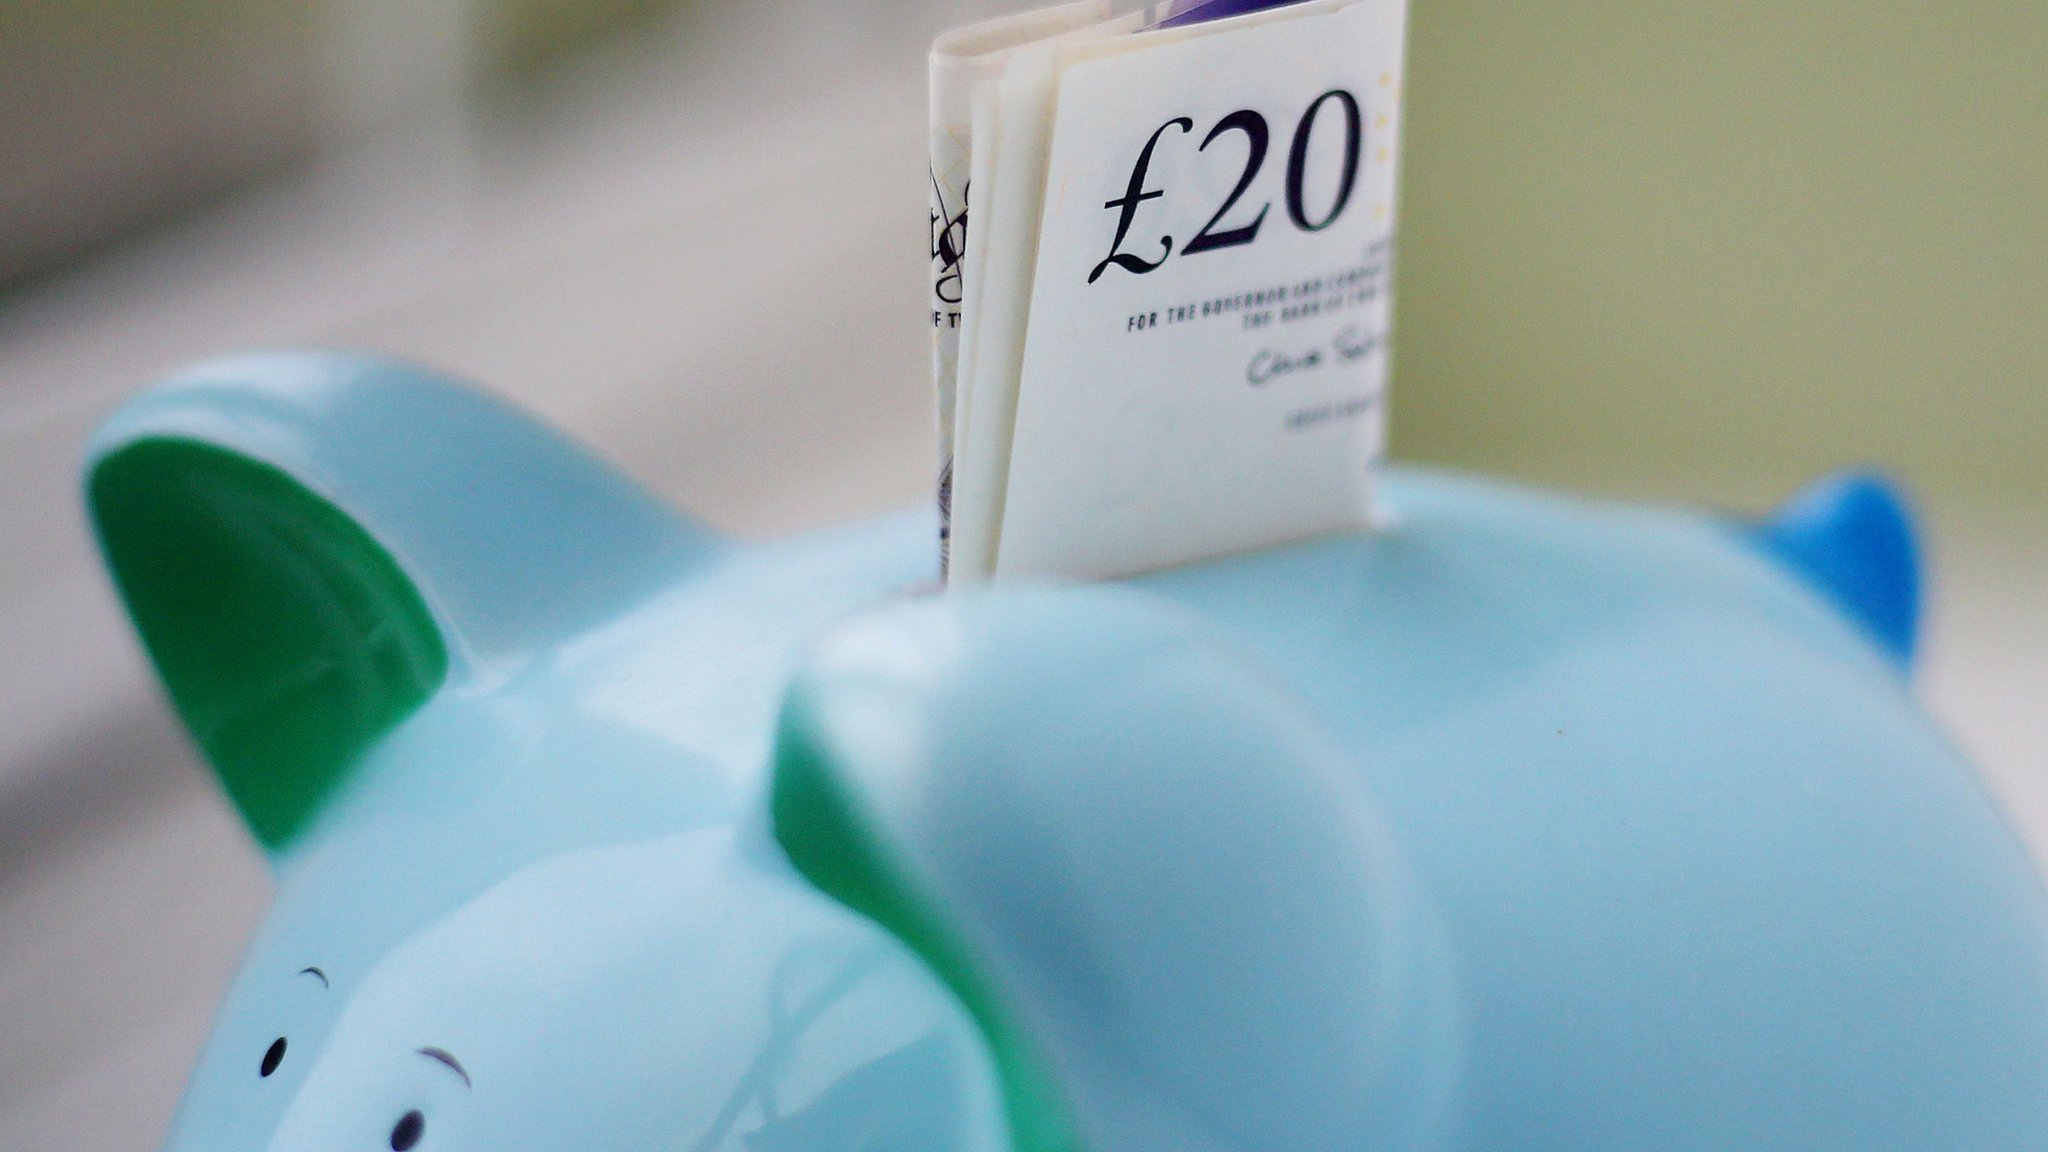 Debt woes 'weigh heavily' on young people, survey finds